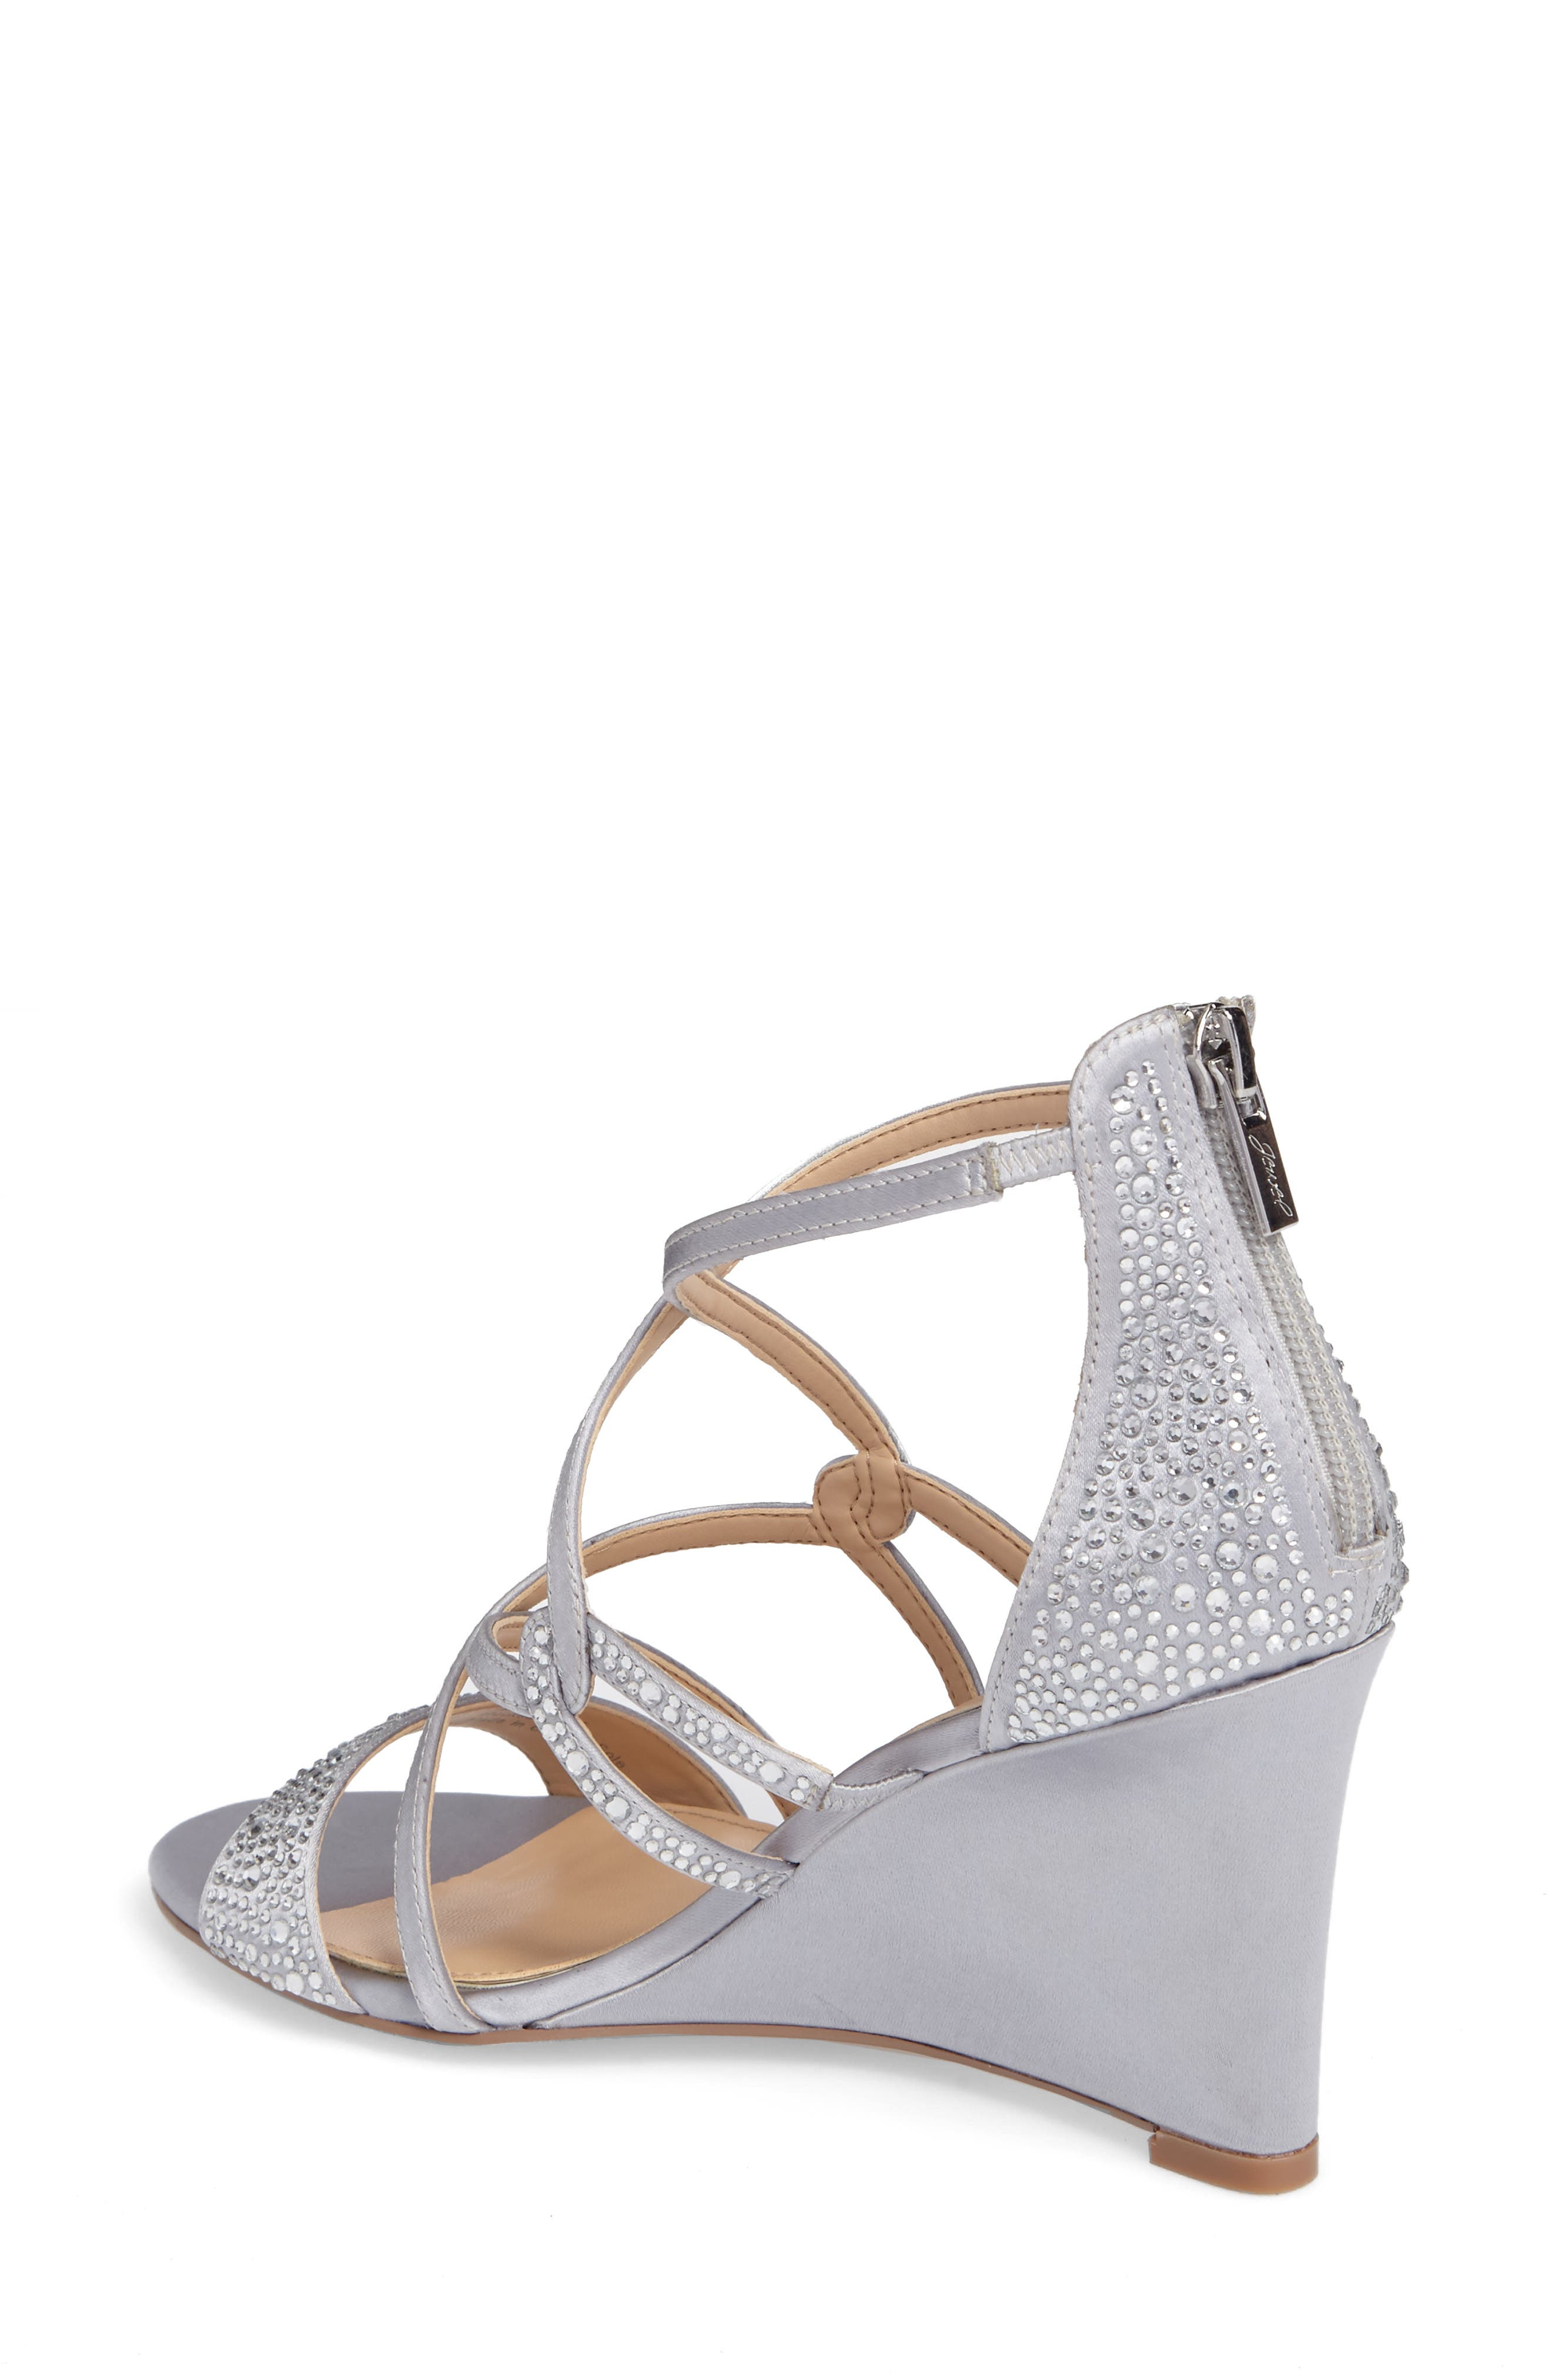 Ally II Embellished Wedge Sandal,                             Alternate thumbnail 2, color,                             Silver Satin